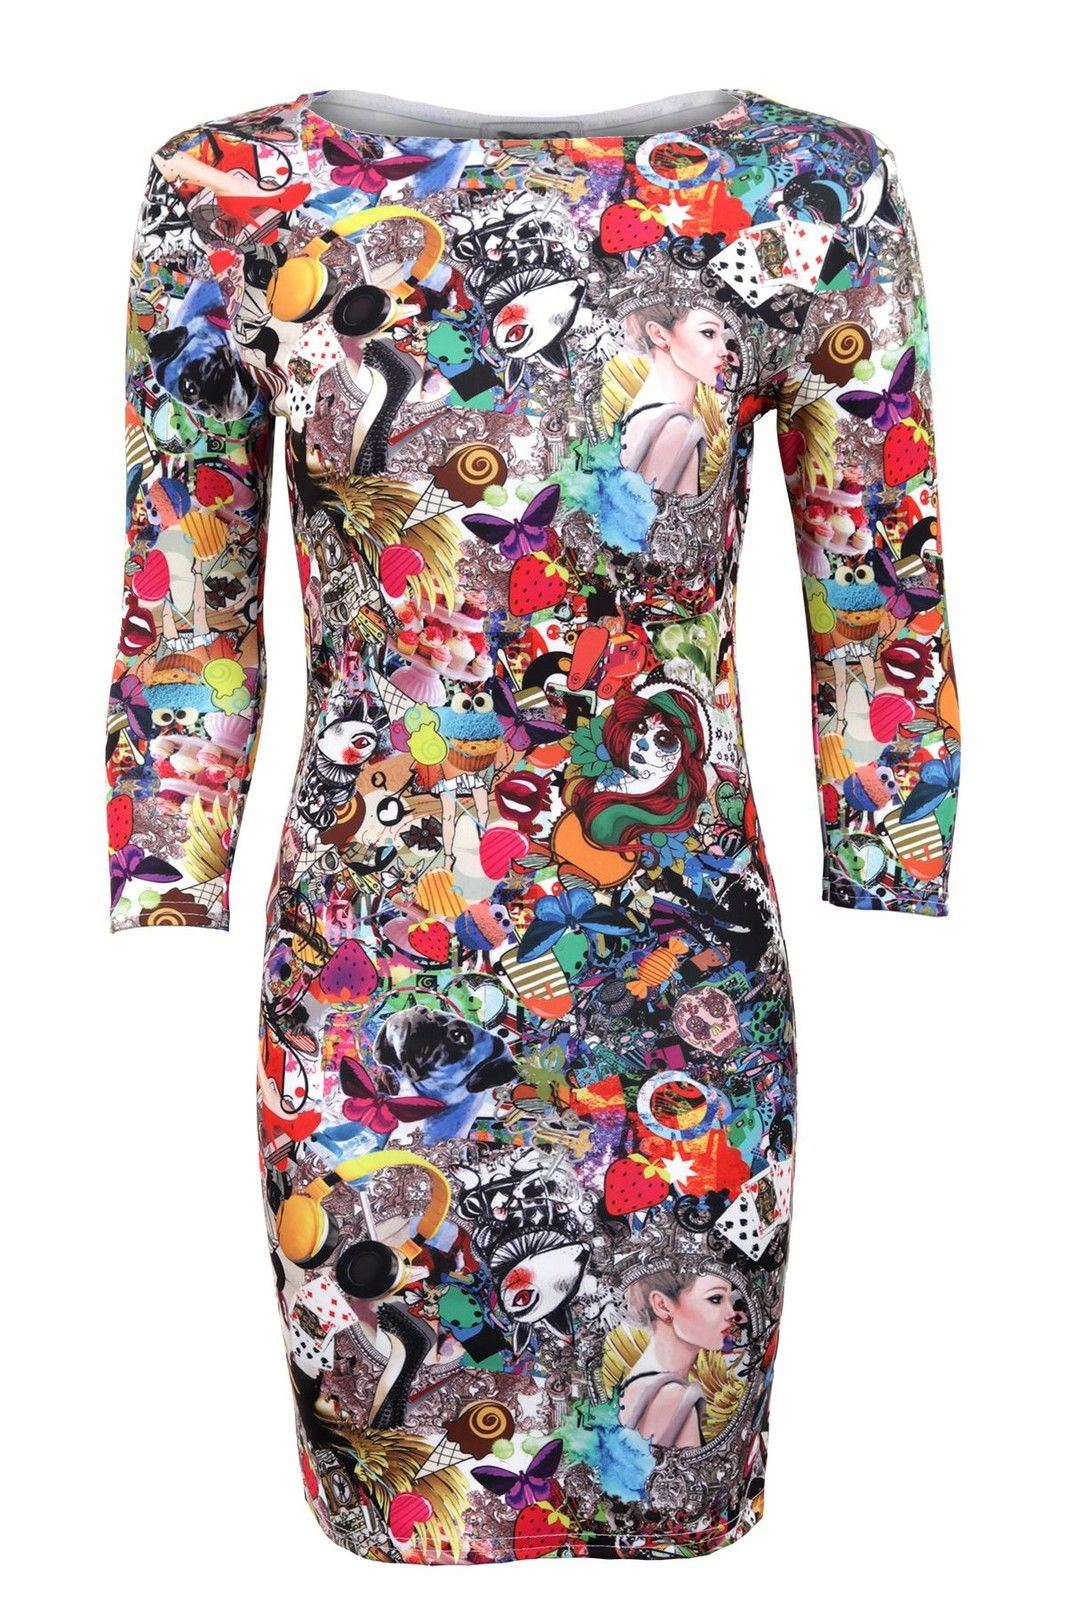 women s 3 quarter sleeves party funky crazy print ladies bodycon